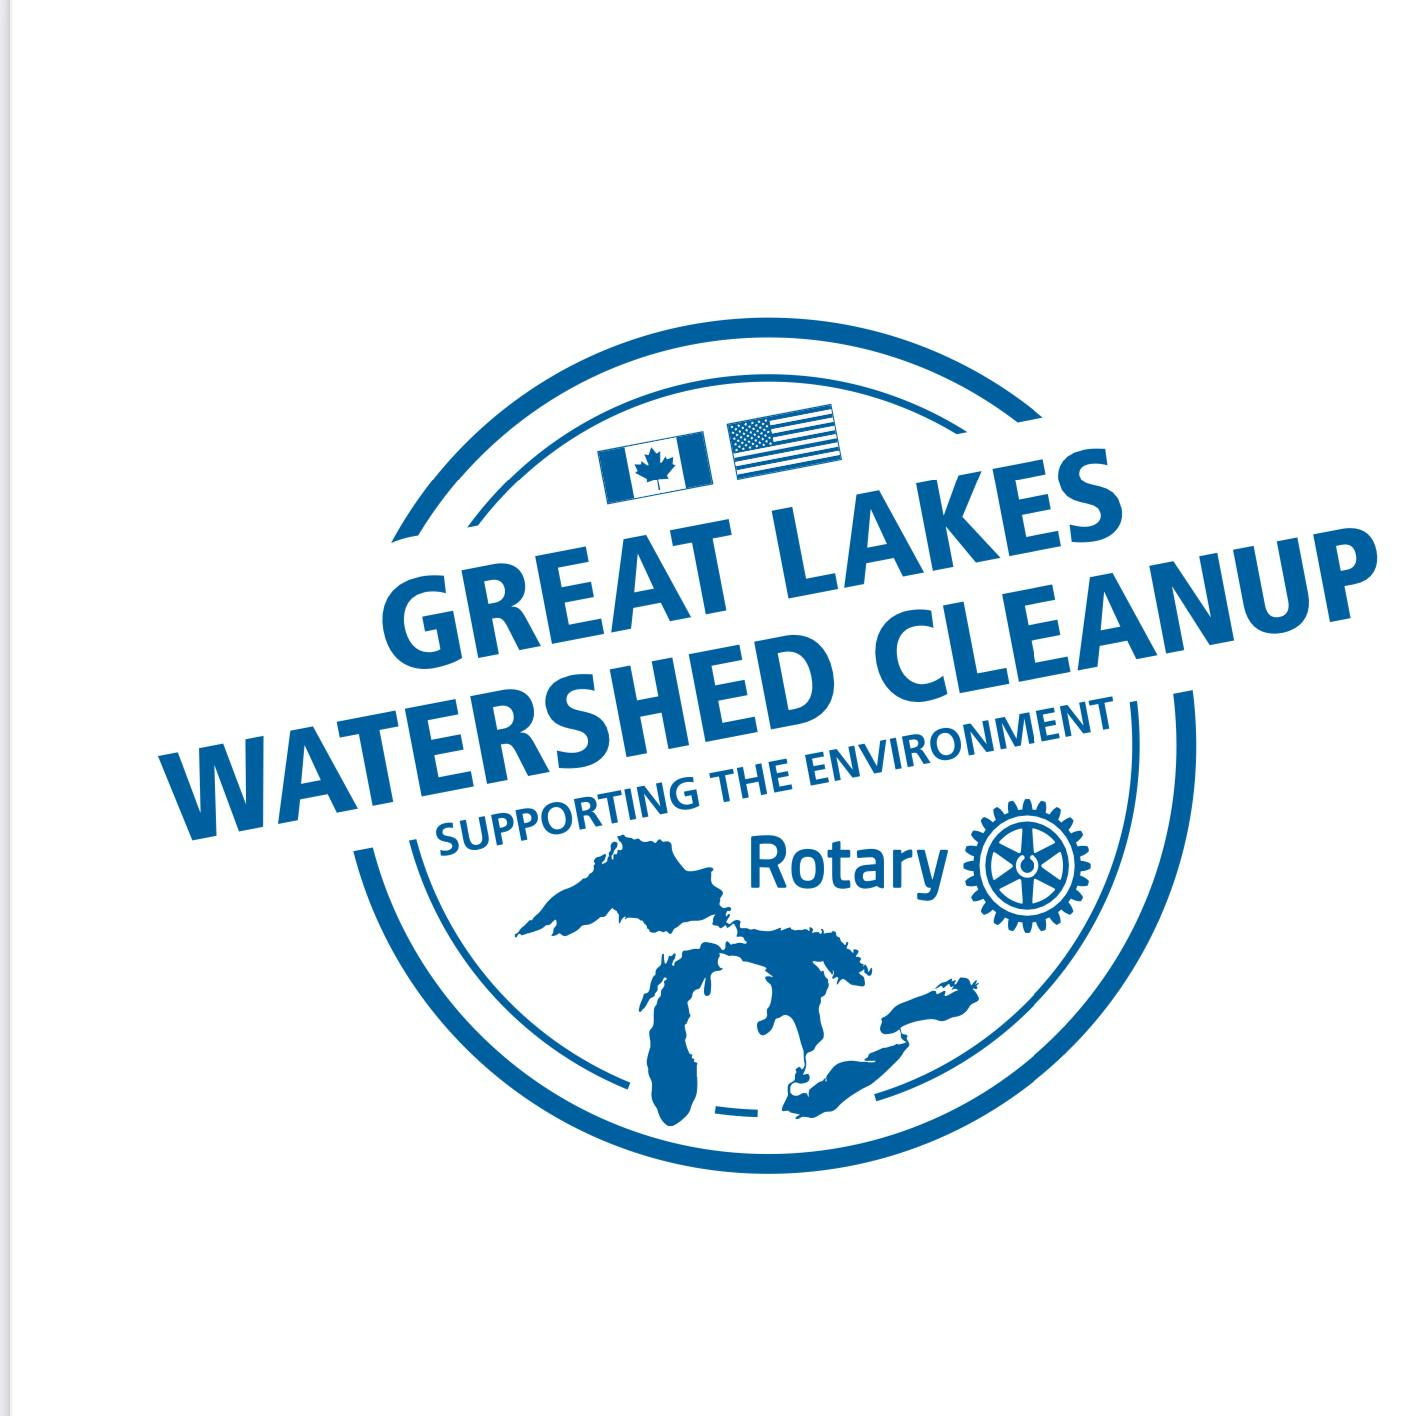 Great Lakes Watershed Clean-up